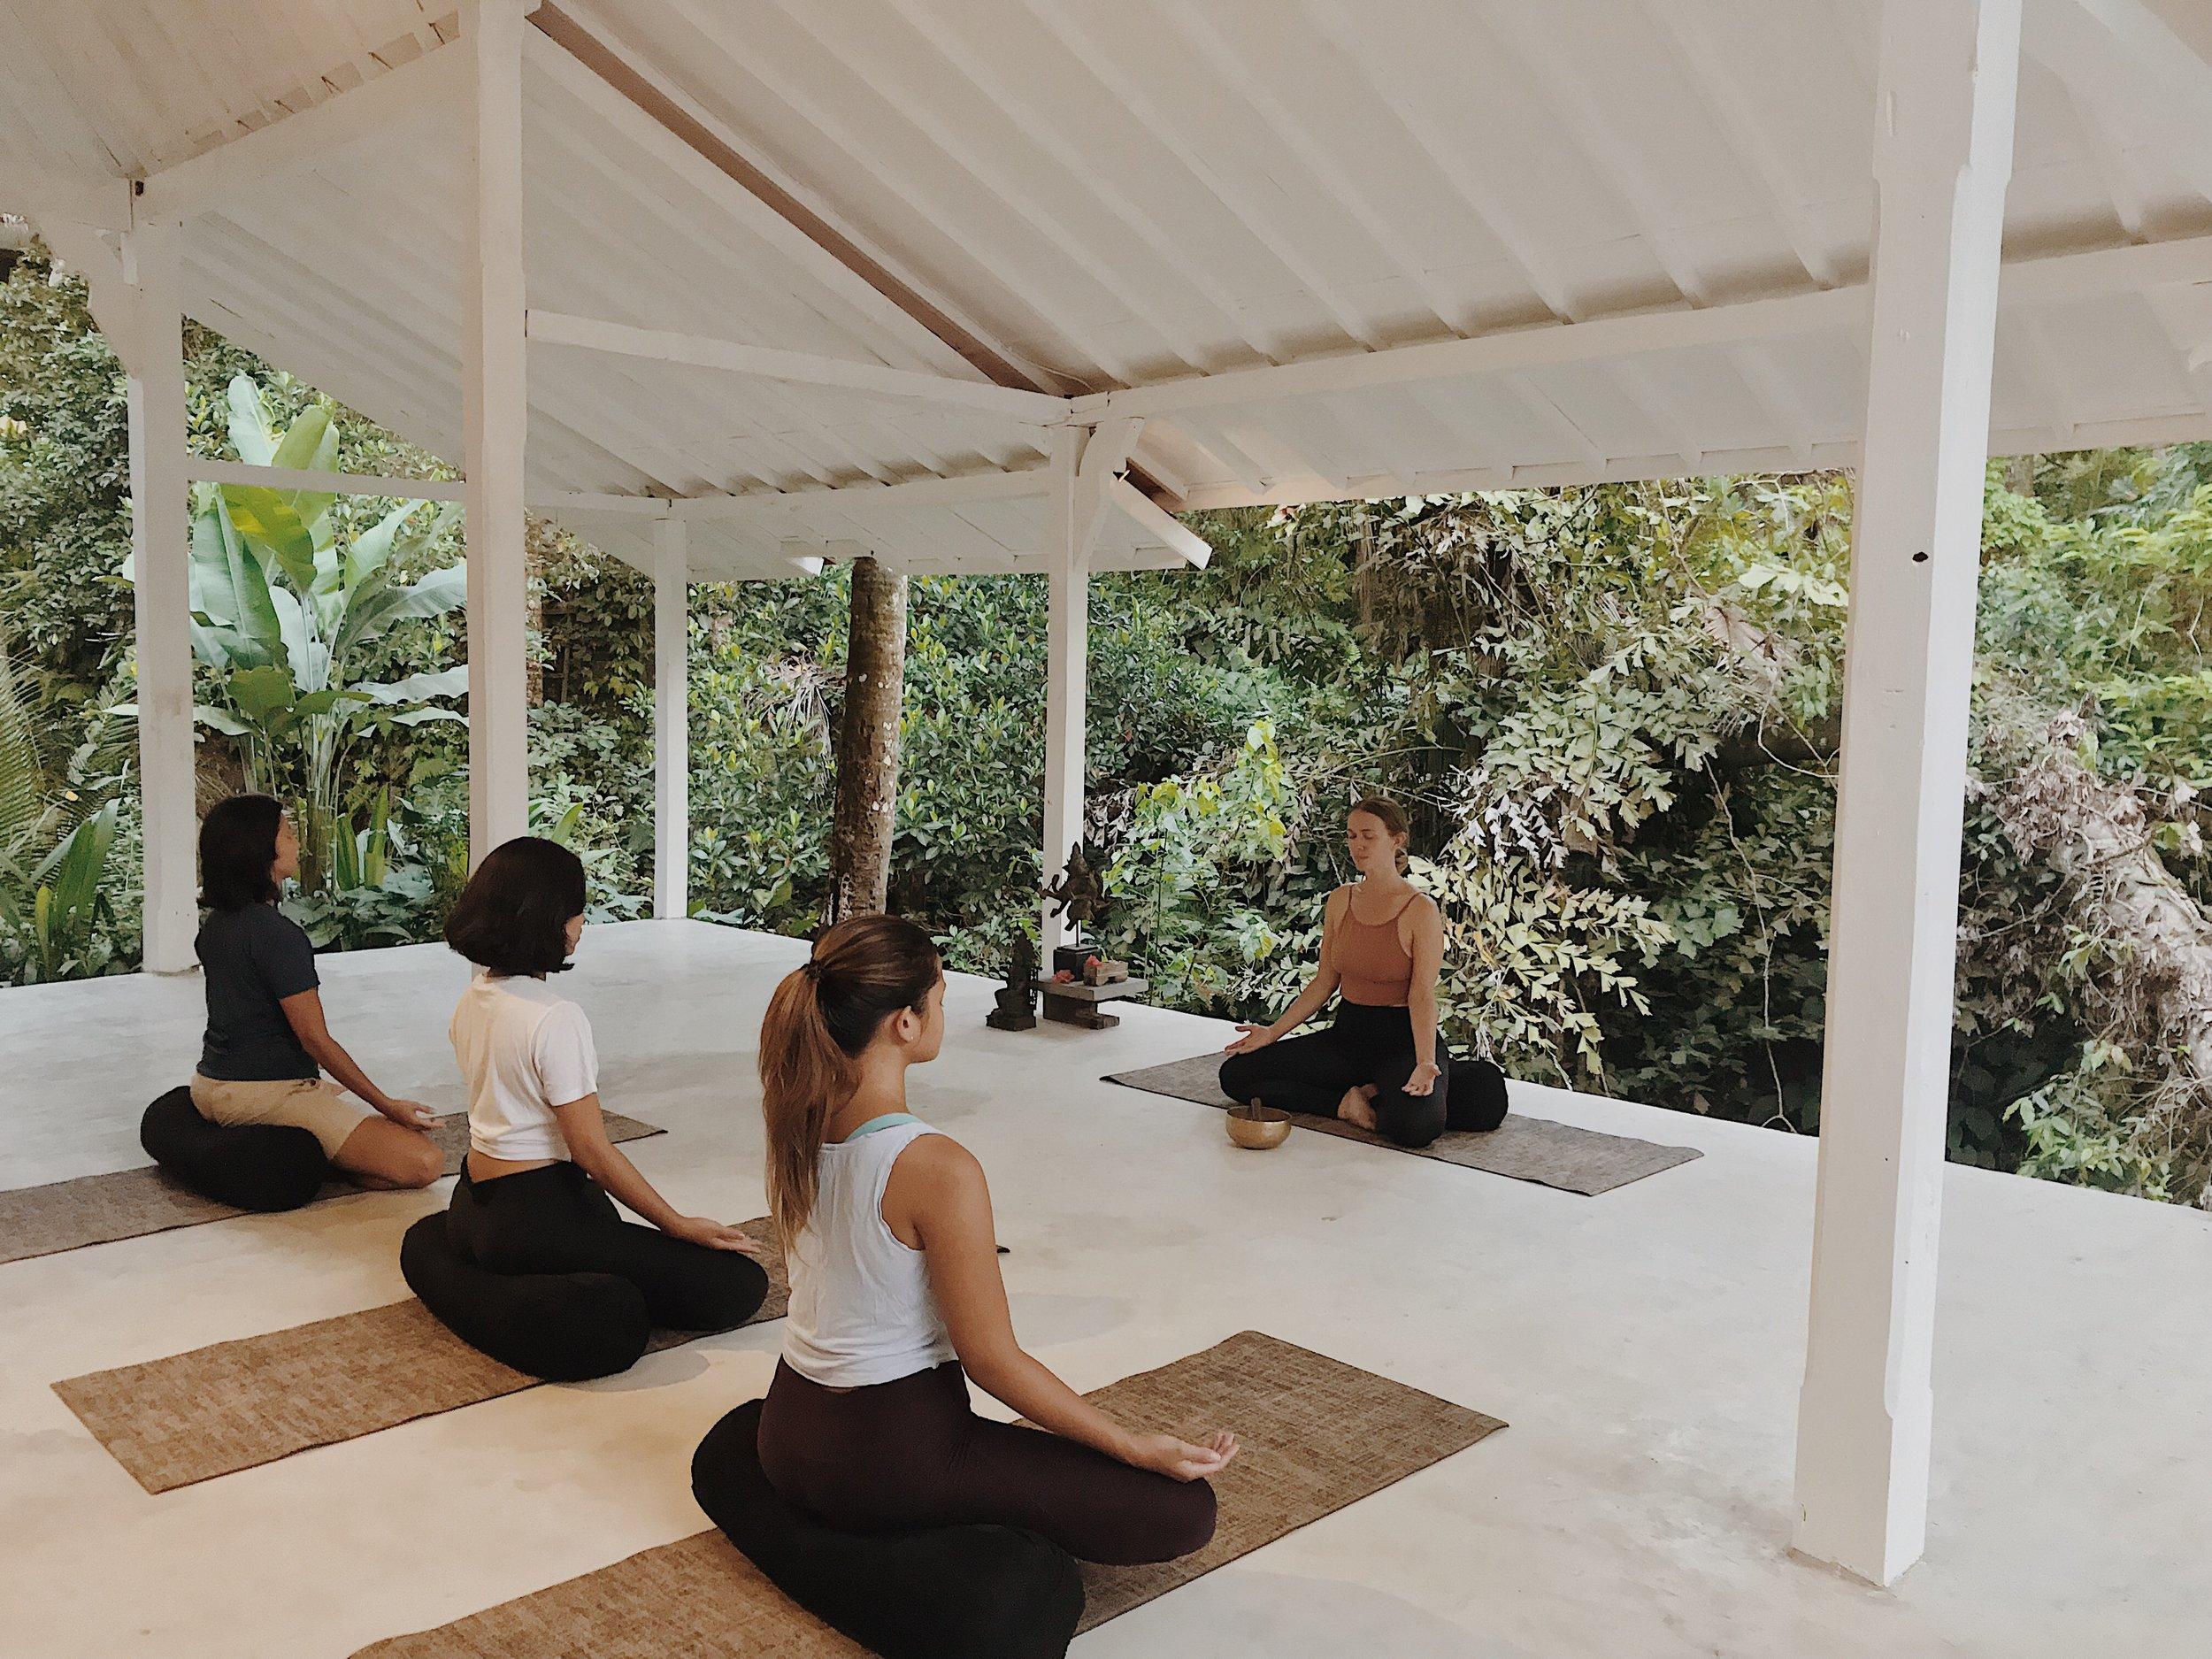 ilse-bos-yoga-retreat-bali-nederland-